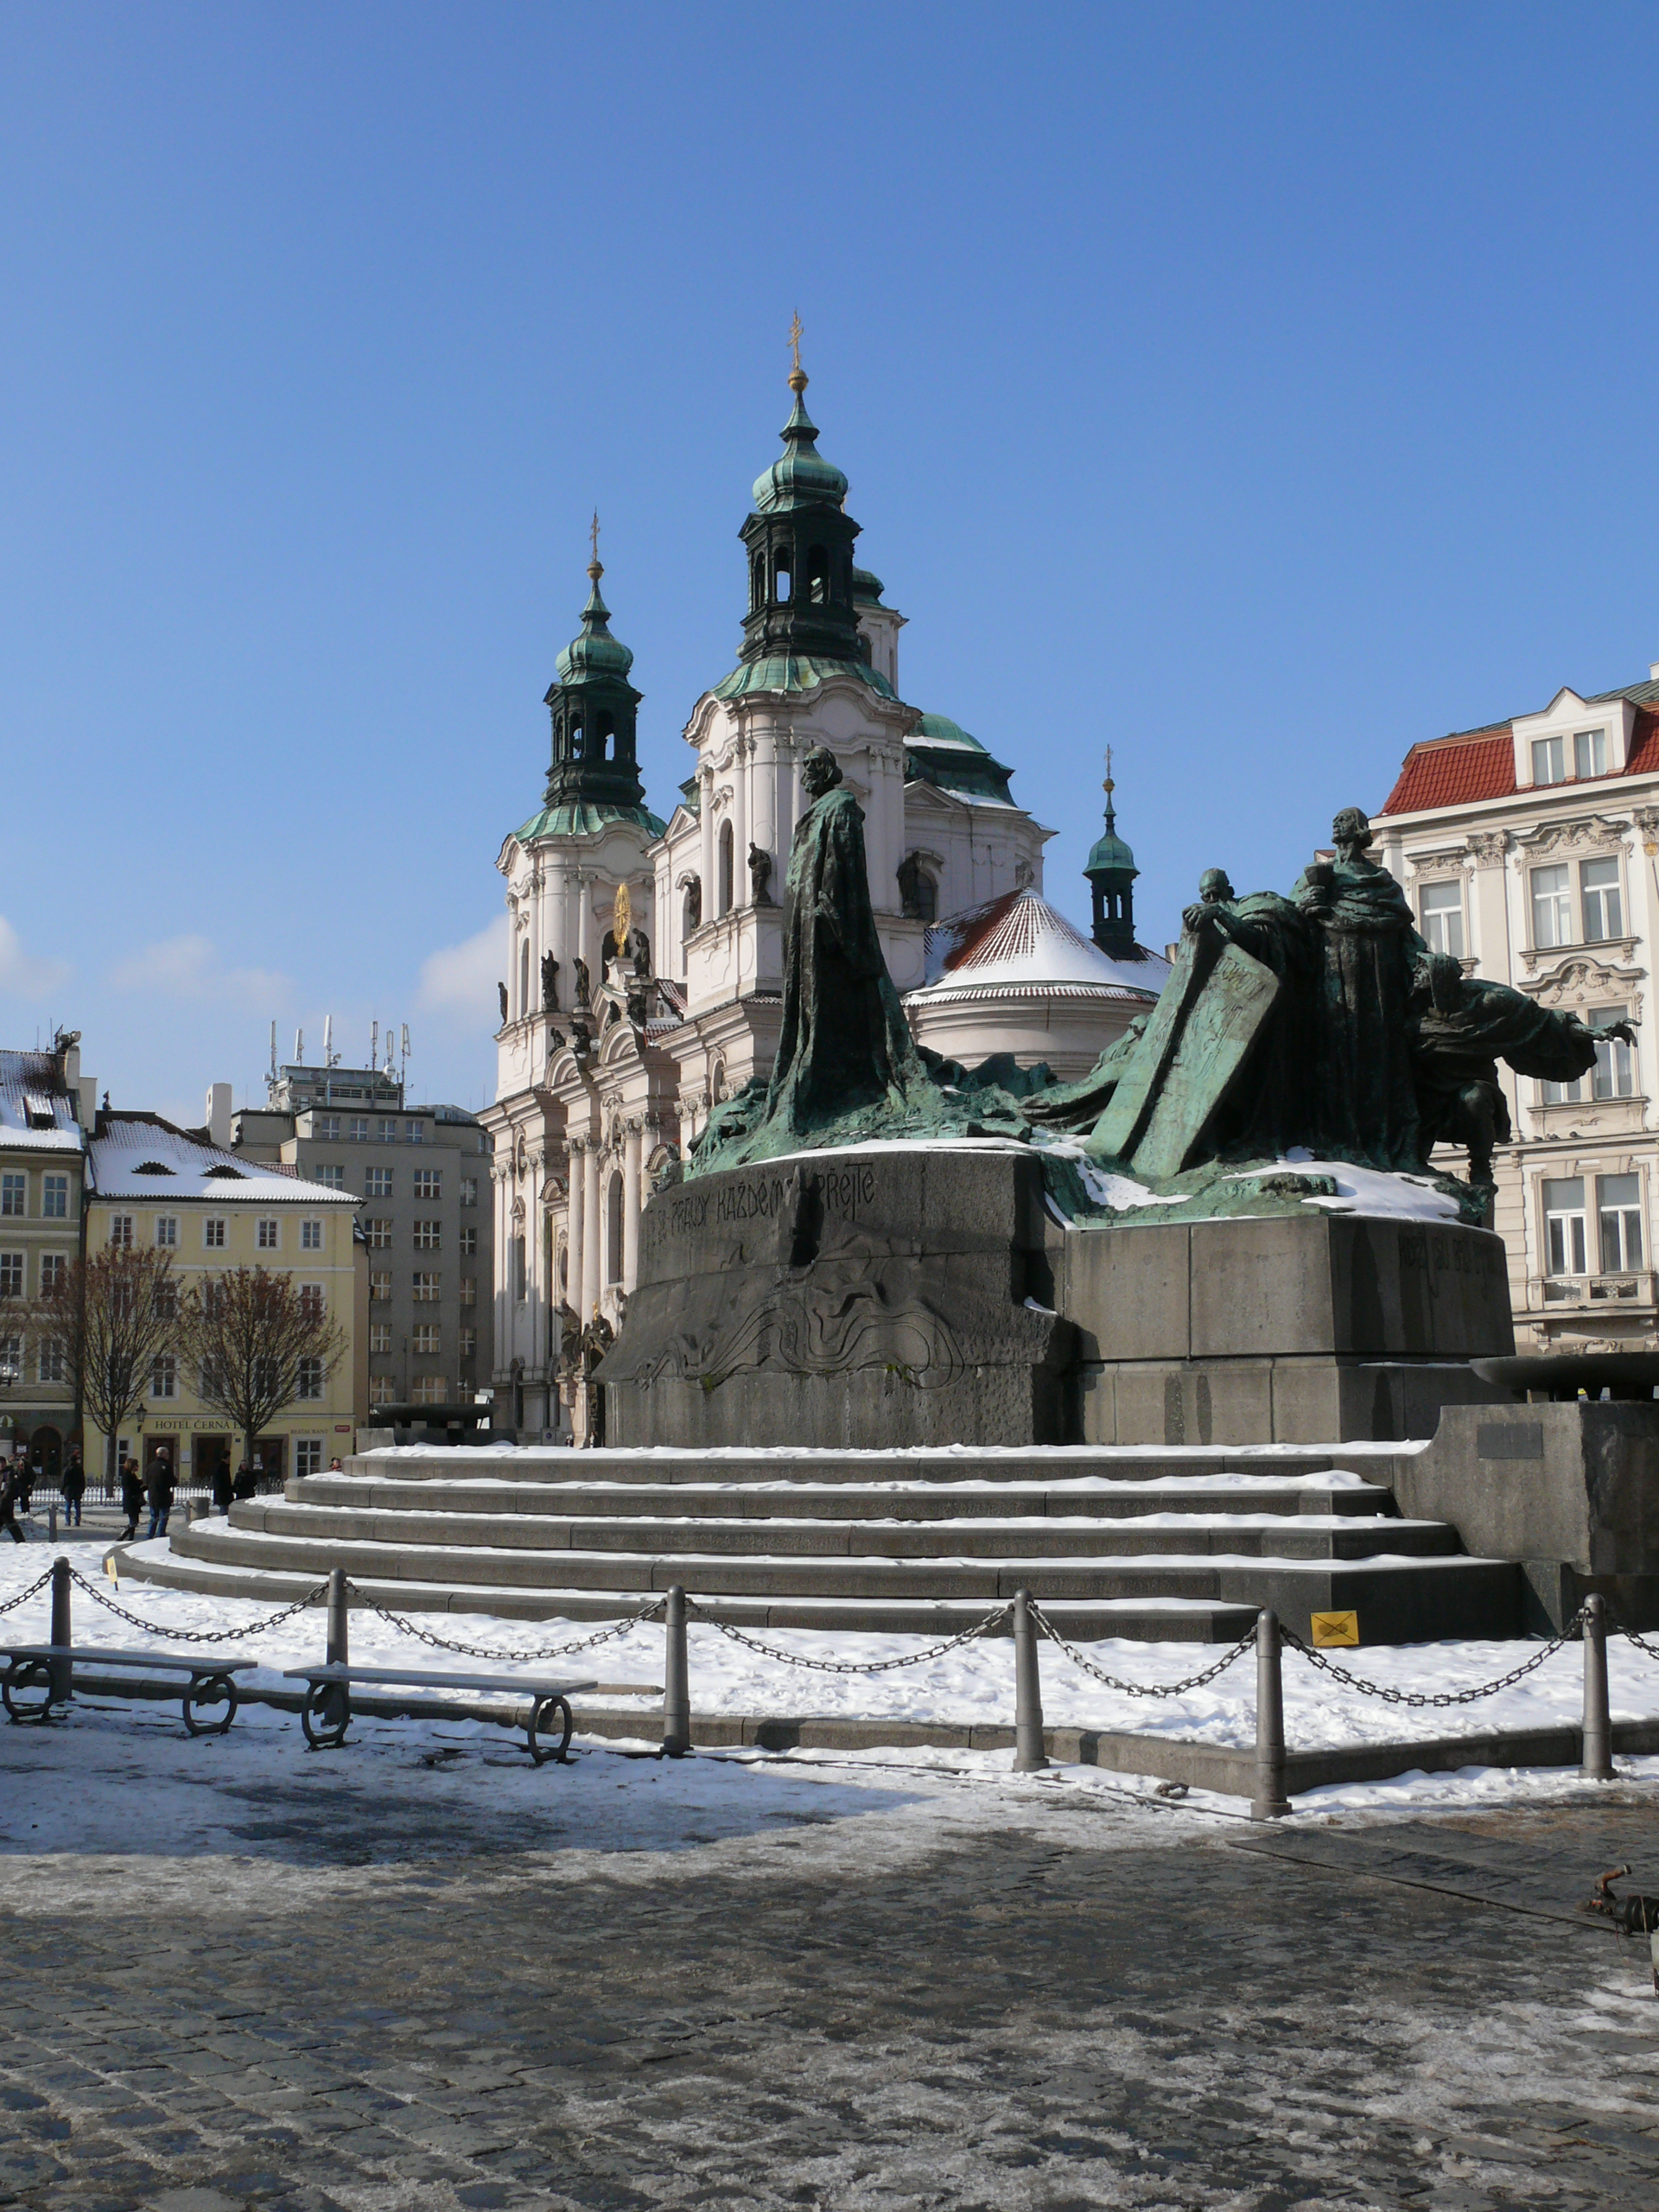 Dating back to the late 12th century, the Old Town Square started life as the central marketplace for Prague. Over the next few centuries, many buildings of Romanesque, Baroque and Gothic styles were erected around the market. The square has also been the site of demonstrations, confrontations and e...